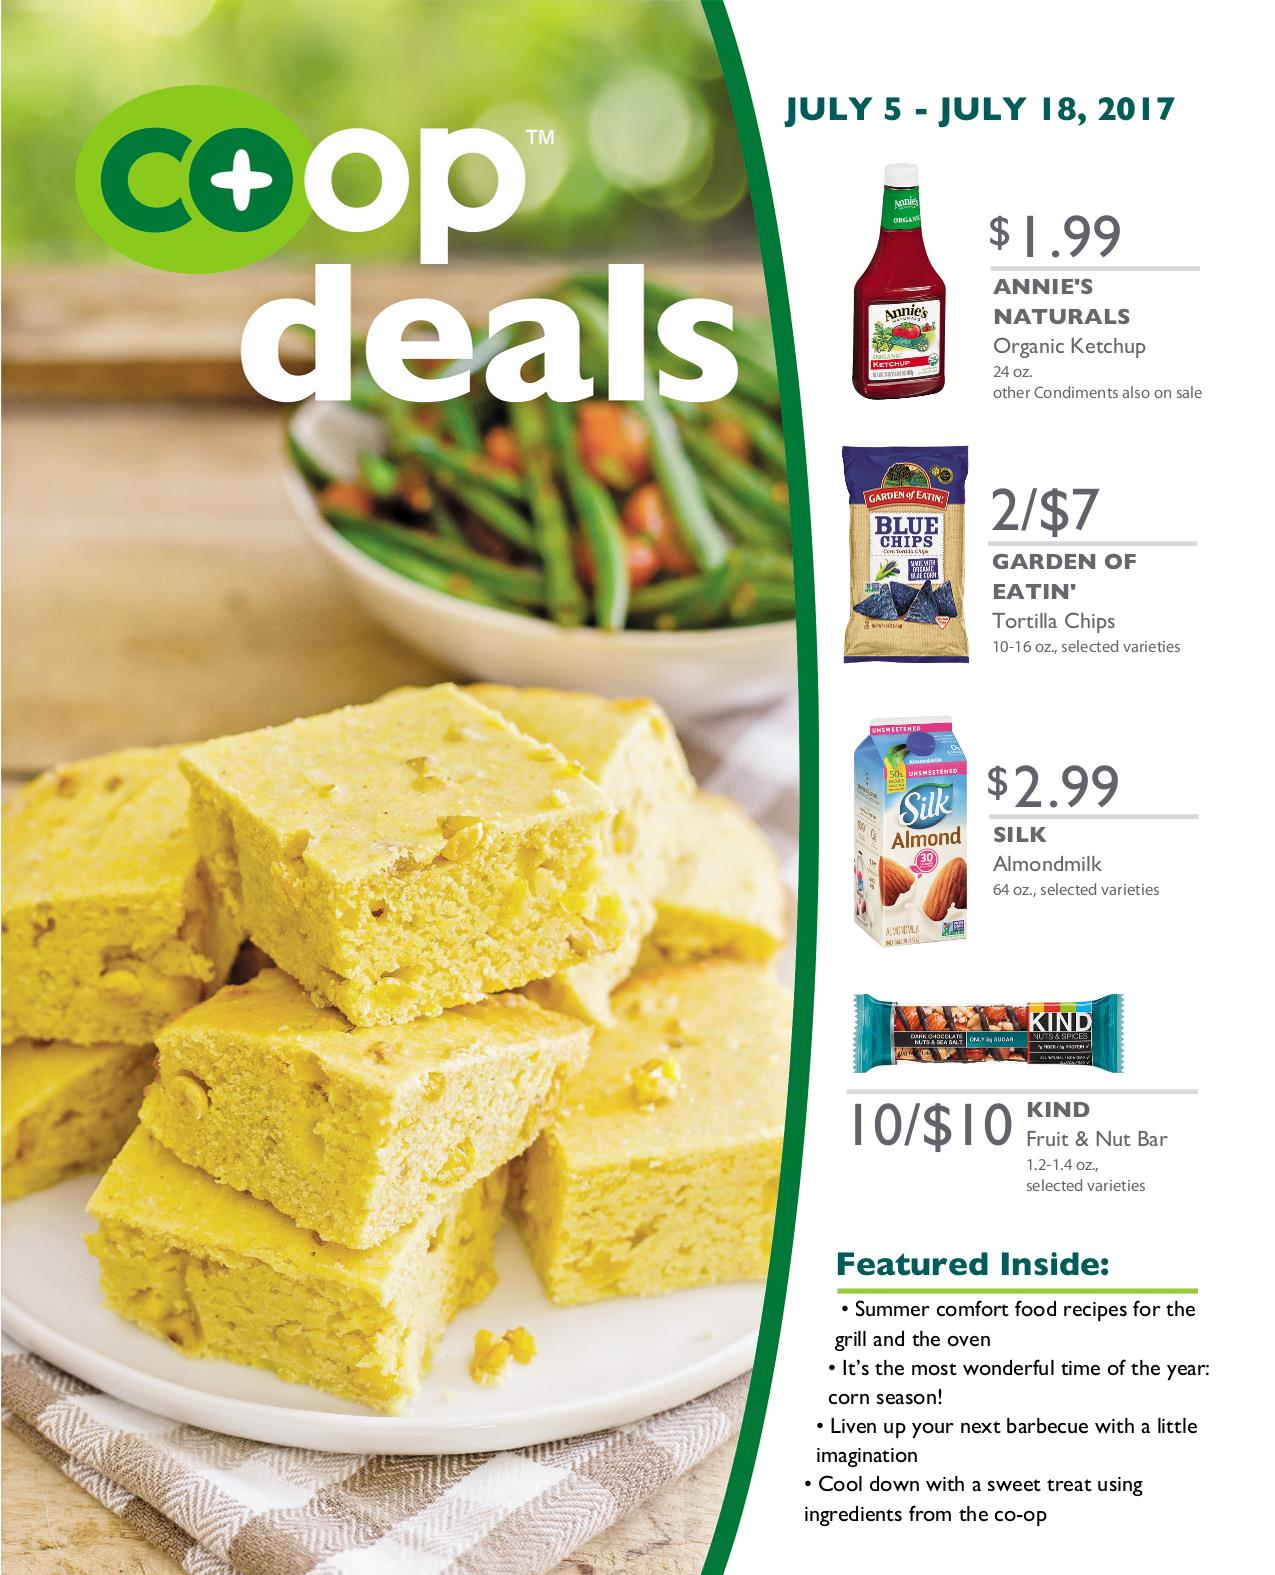 Co+op Deals July 2017 Flyer A